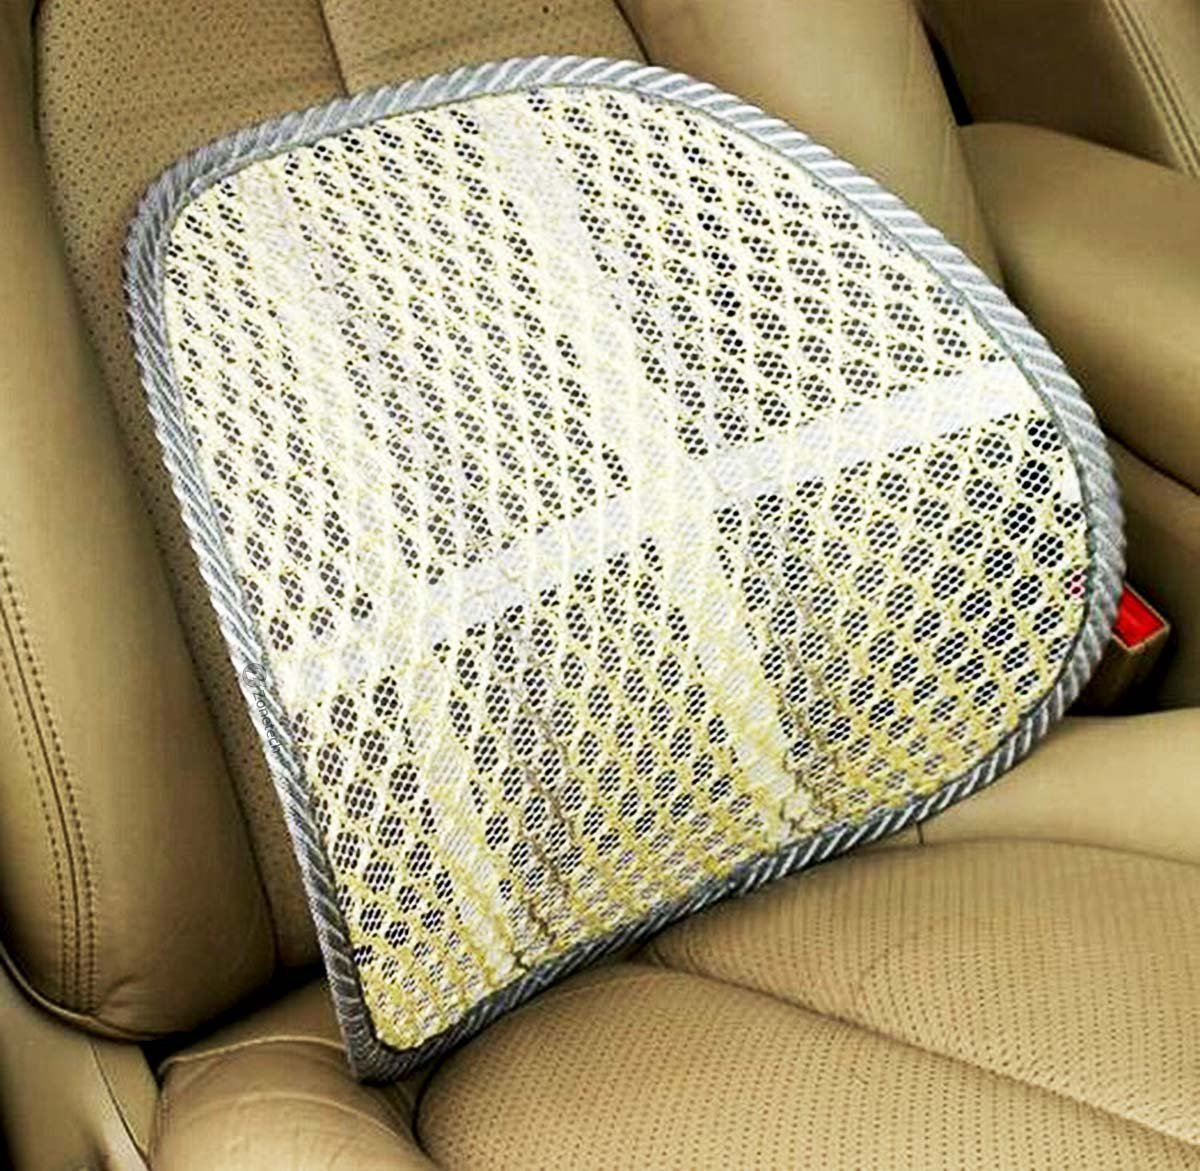 Zone tech mesh hollow car auto chair seat premium quality light color hollow car auto chair seat back cushion home office waist lumbar support pillow pad